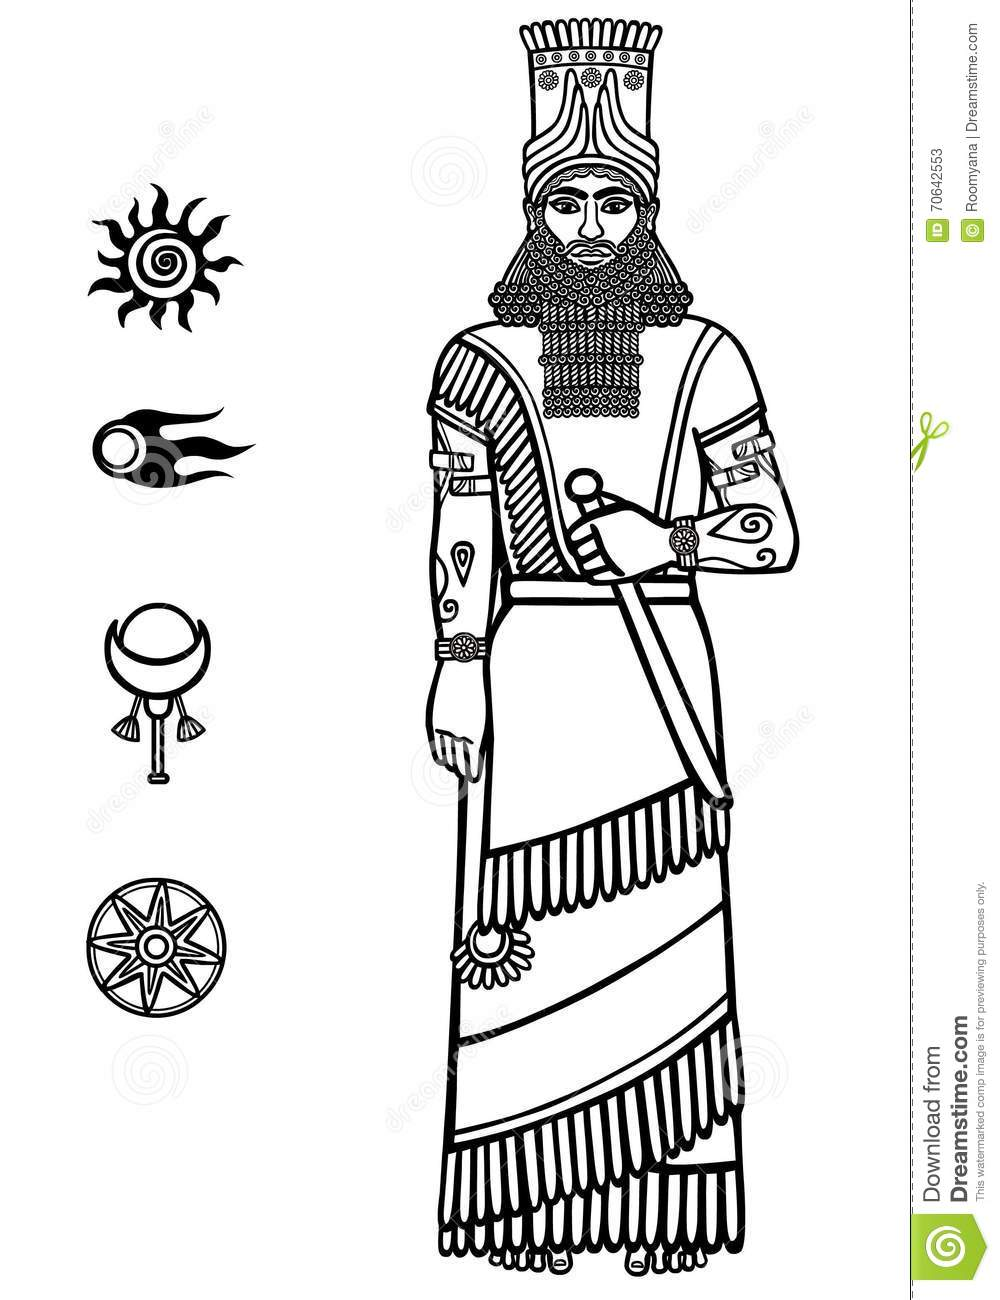 Image Of Assyrian Winged Animal Vector Illustration